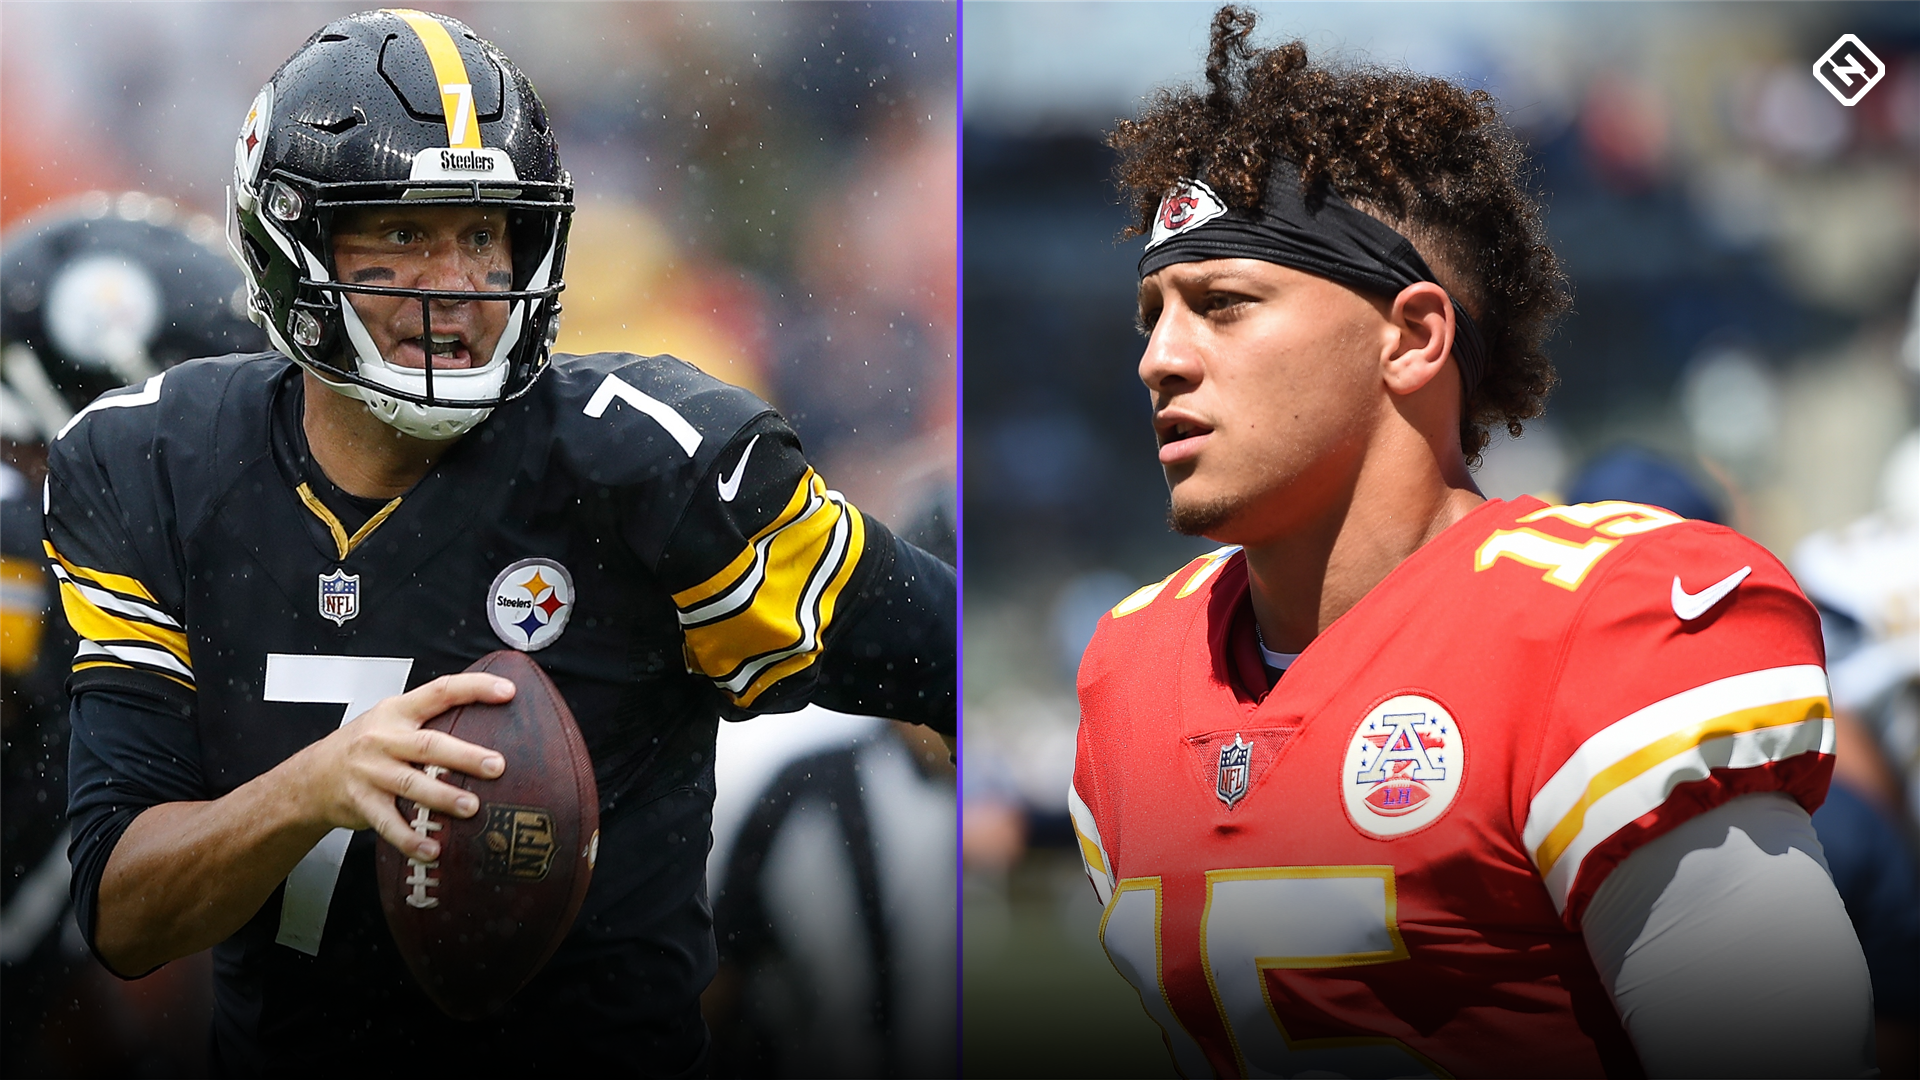 Fantasy Football Start 'Em Sit 'Em Week 2: Roll with Big Ben, Mahomes